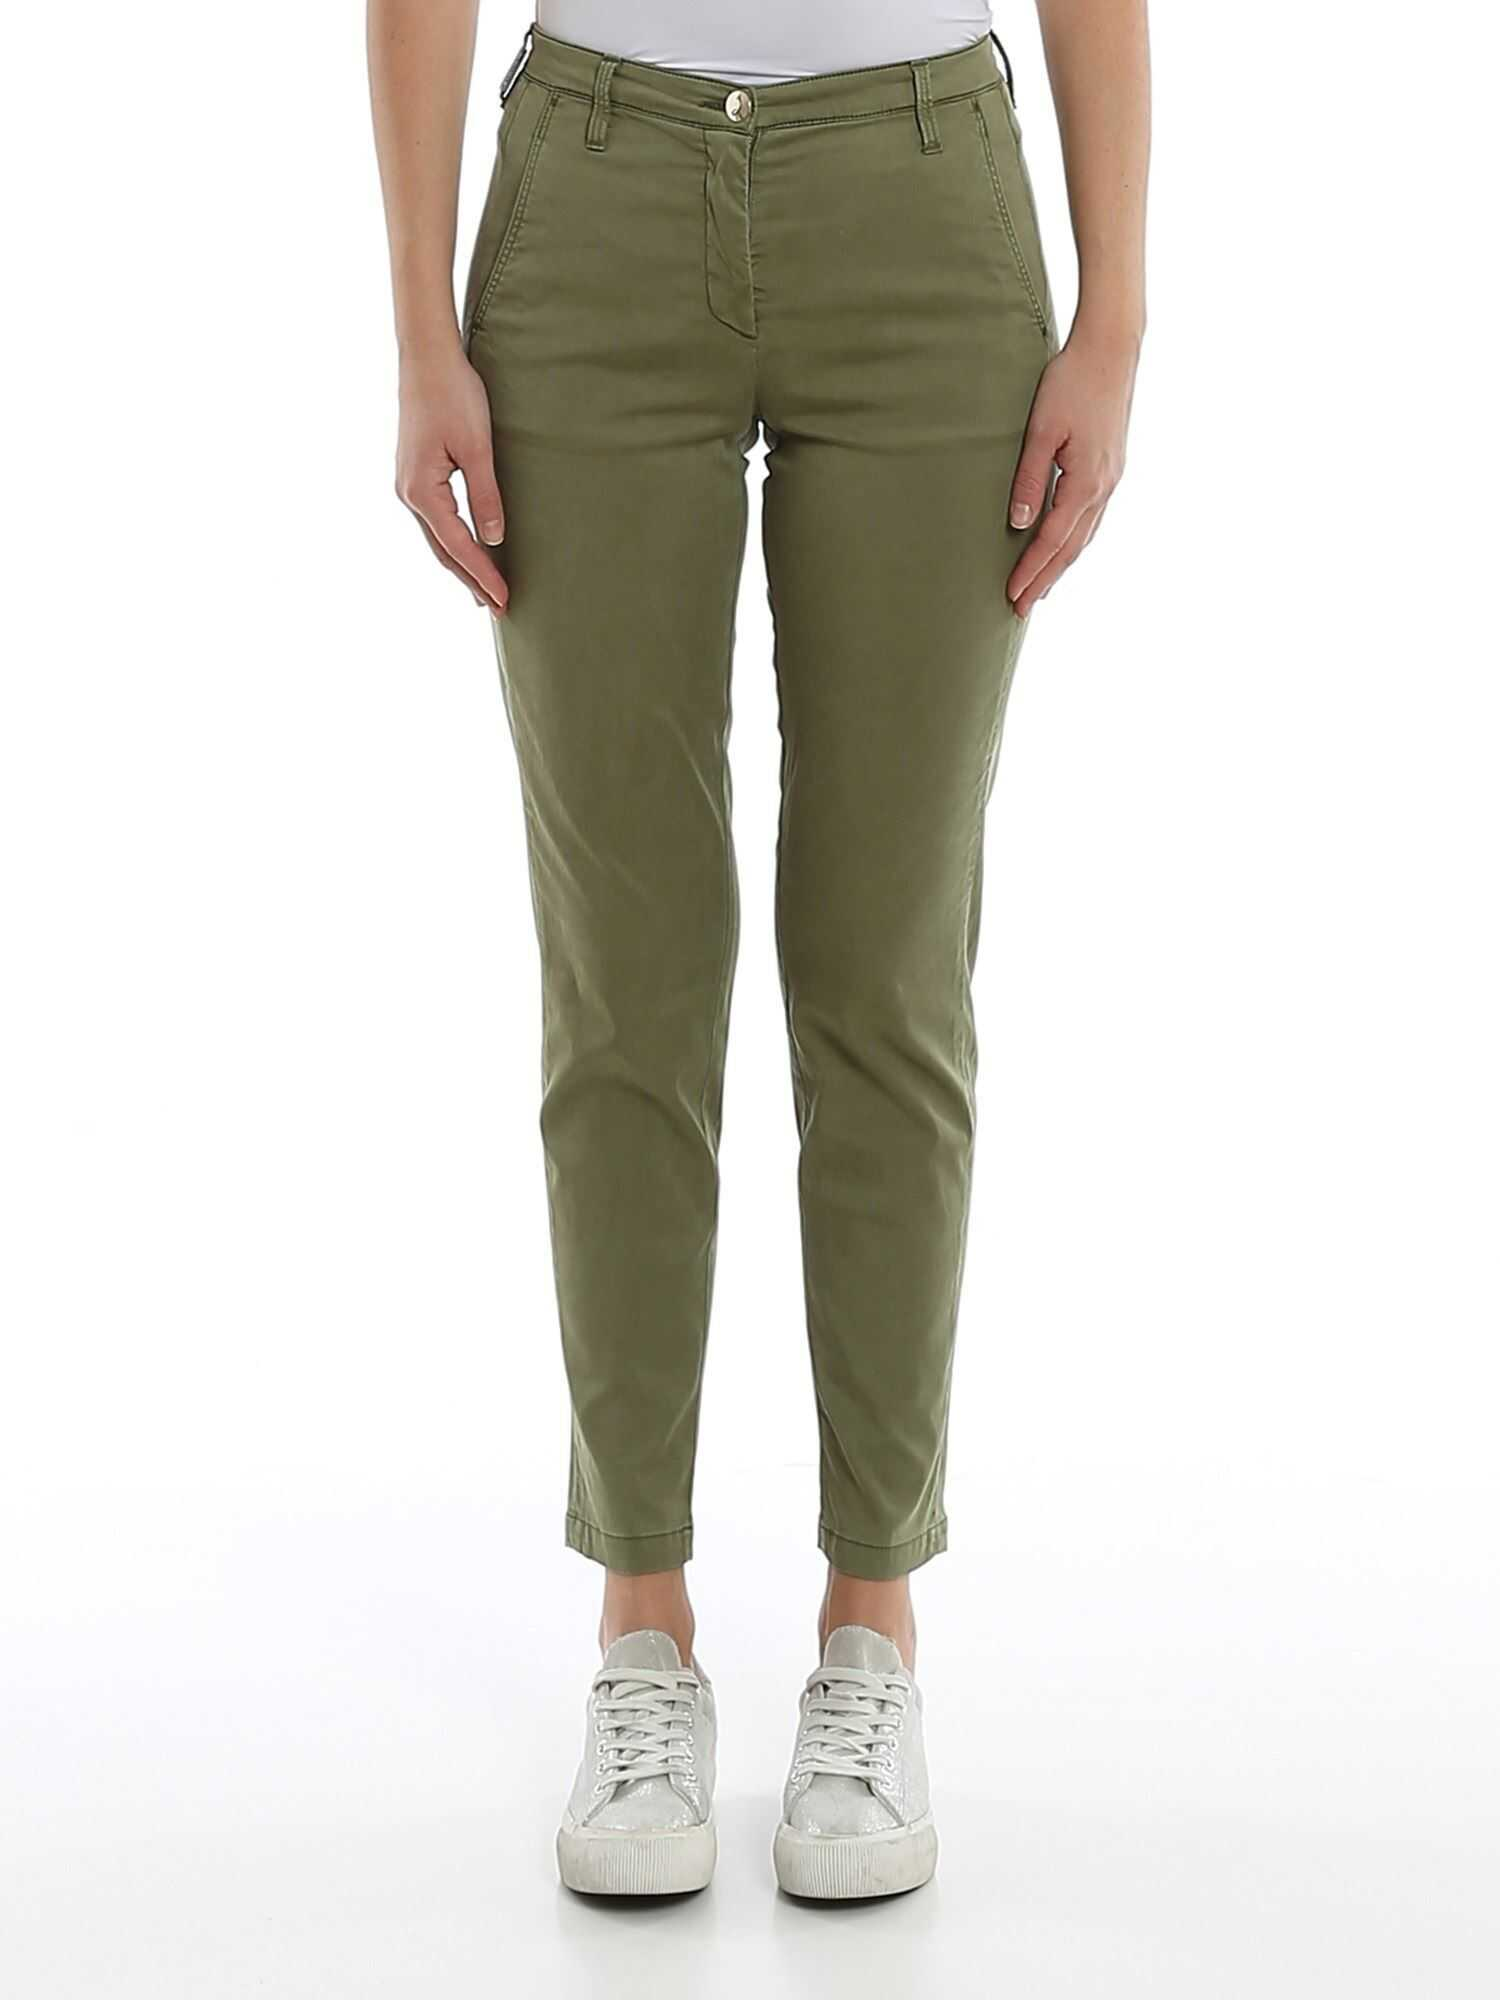 Jacob Cohen Marina Stretch Jeans Green